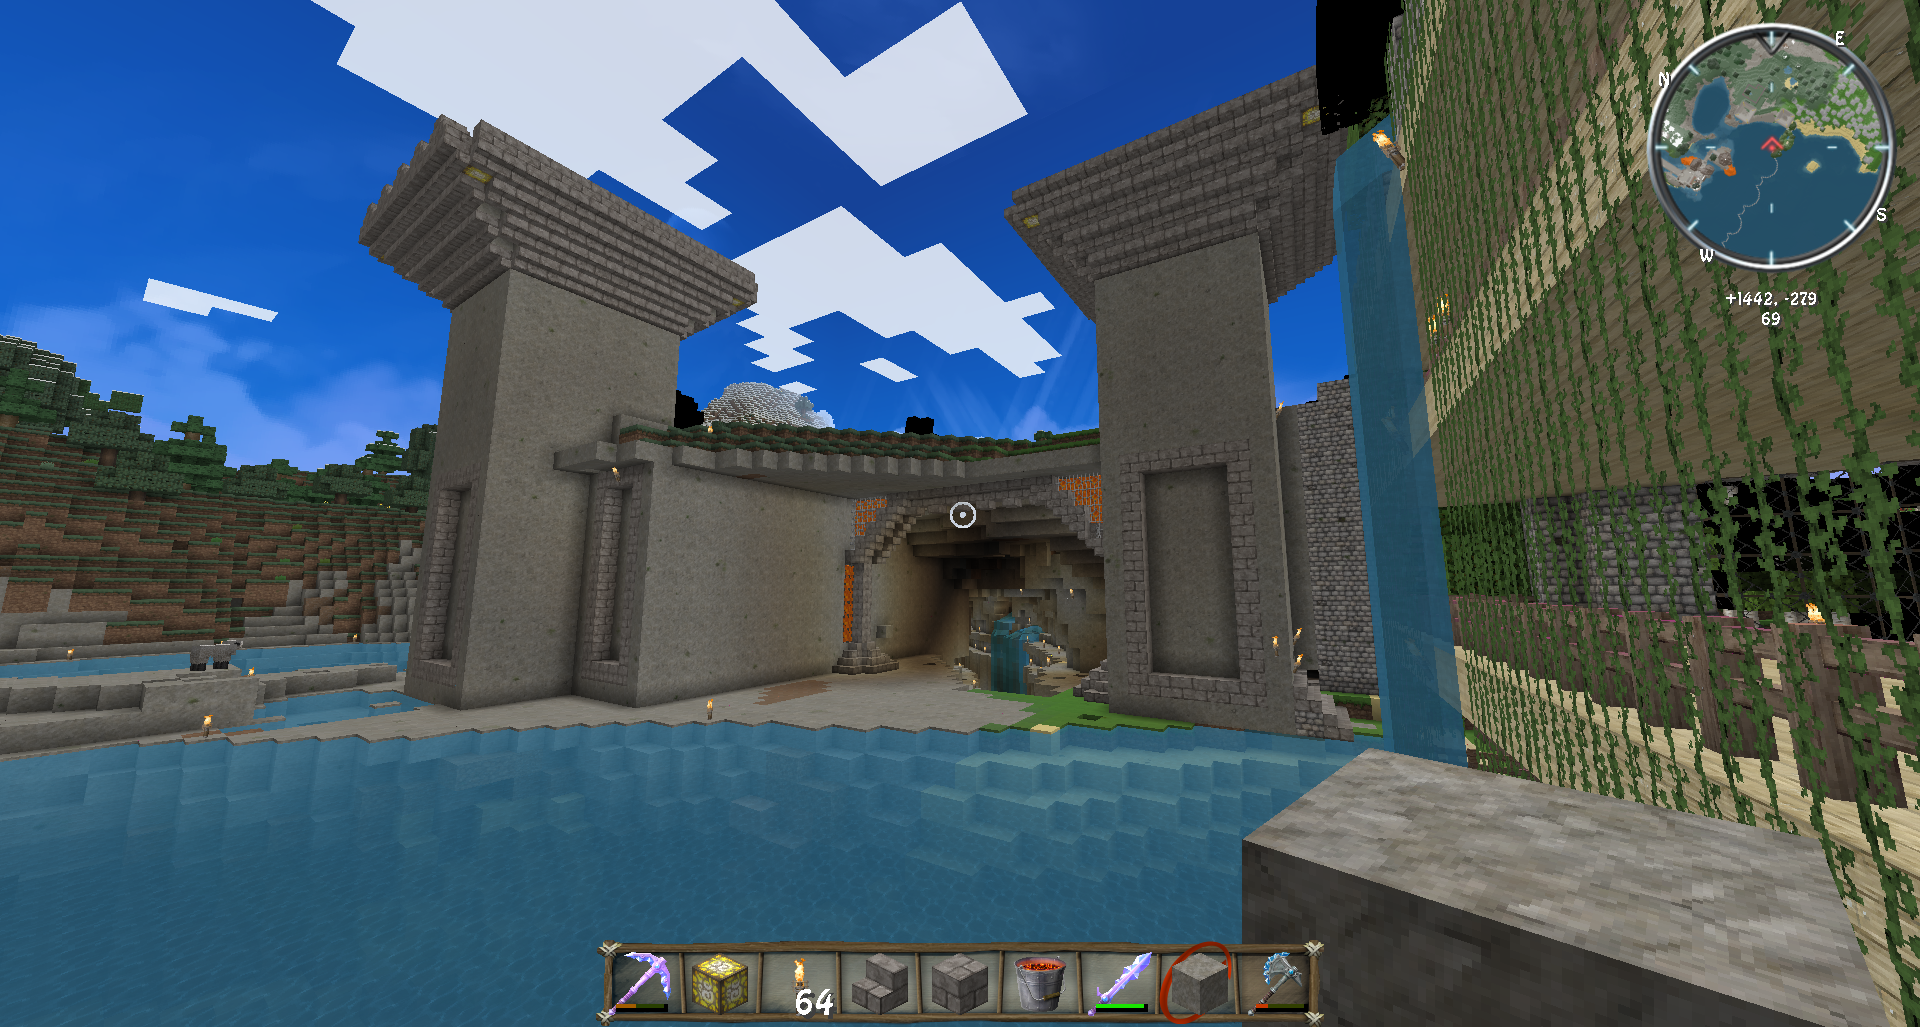 Sheep Pen Minecraft Also Holds a Sheep Pen